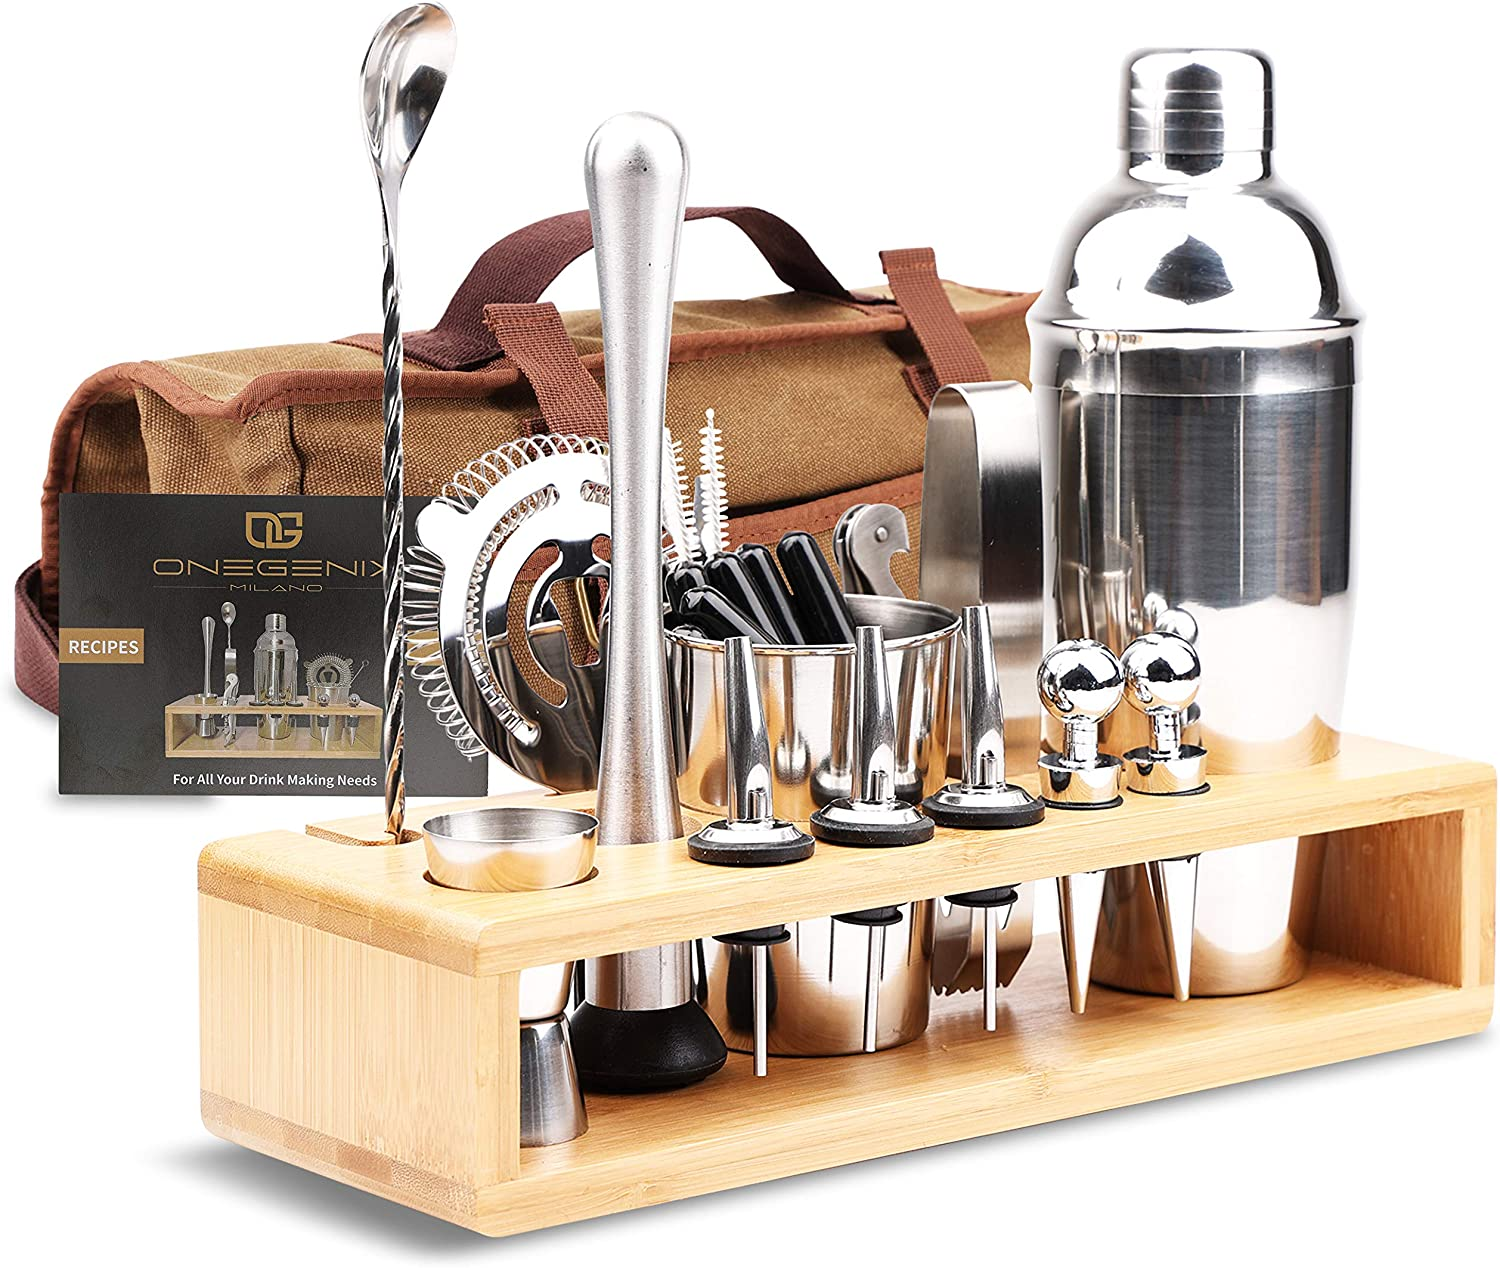 Cocktail Shaker Bartender Kit 21+3 | Premium Bartendering Kit Stainless Steel Set w/ Wood Stand & Travel Bag | Home Bar Kit w/ Mixer, Strainer & many Accessories w/ Recipe Book for Margarita, Martini!